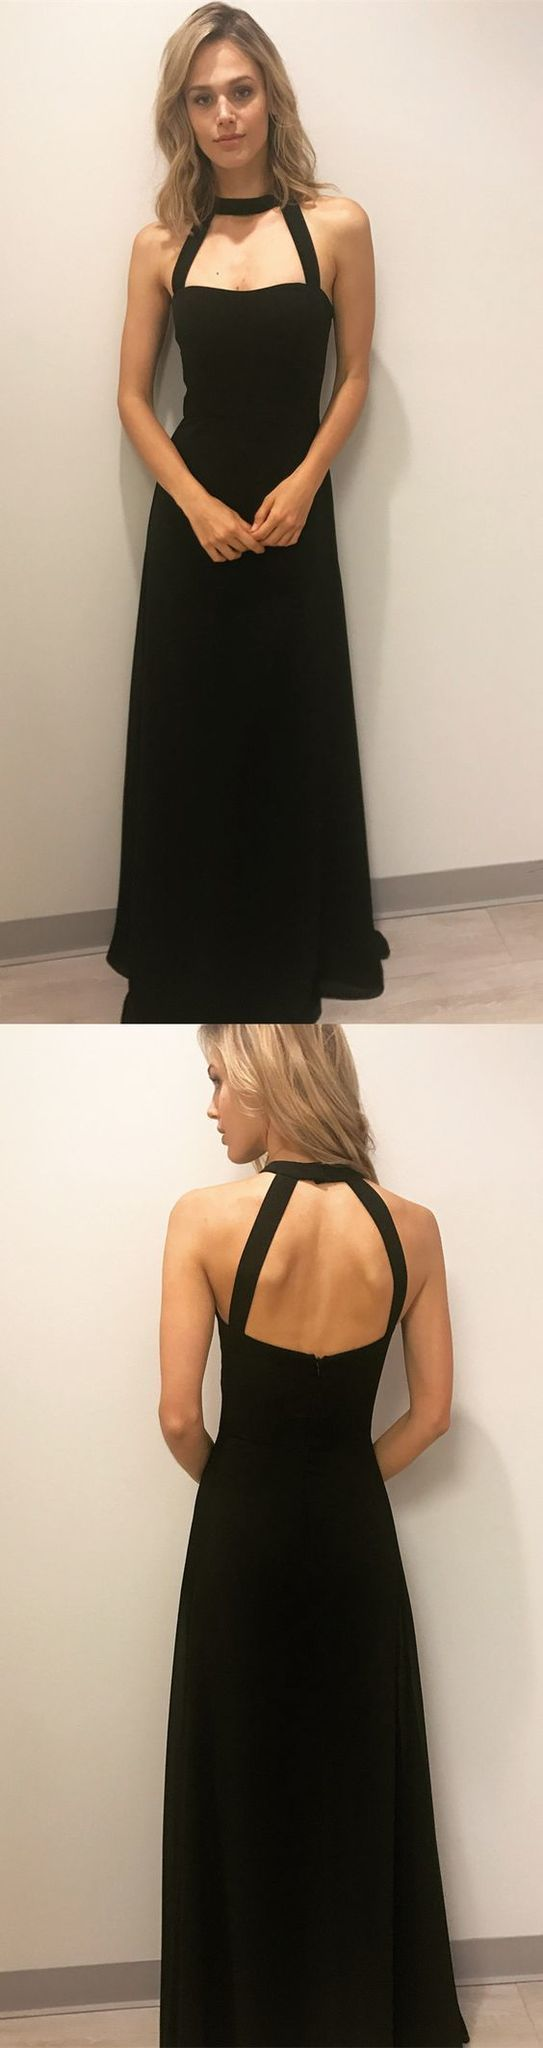 Long black prom dresses, party dresses, formal evening dressse,FLY589